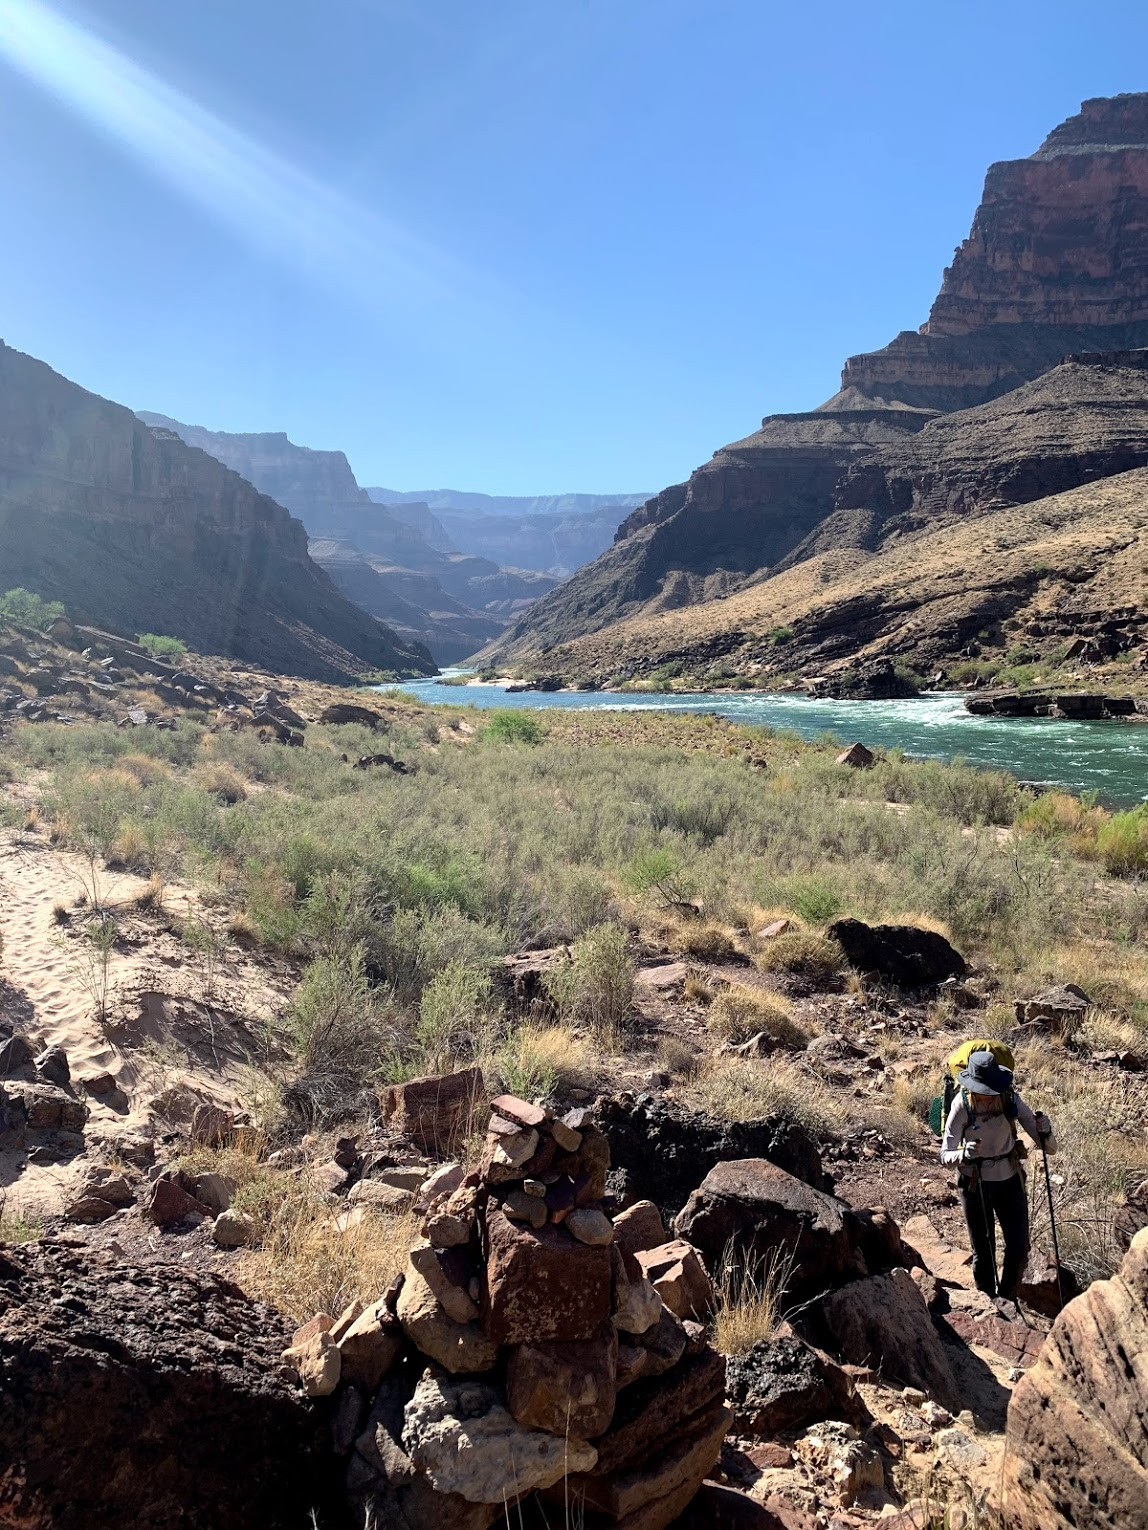 a woman hiking in the grand canyon, with a view of cliffs and the Colorado River.